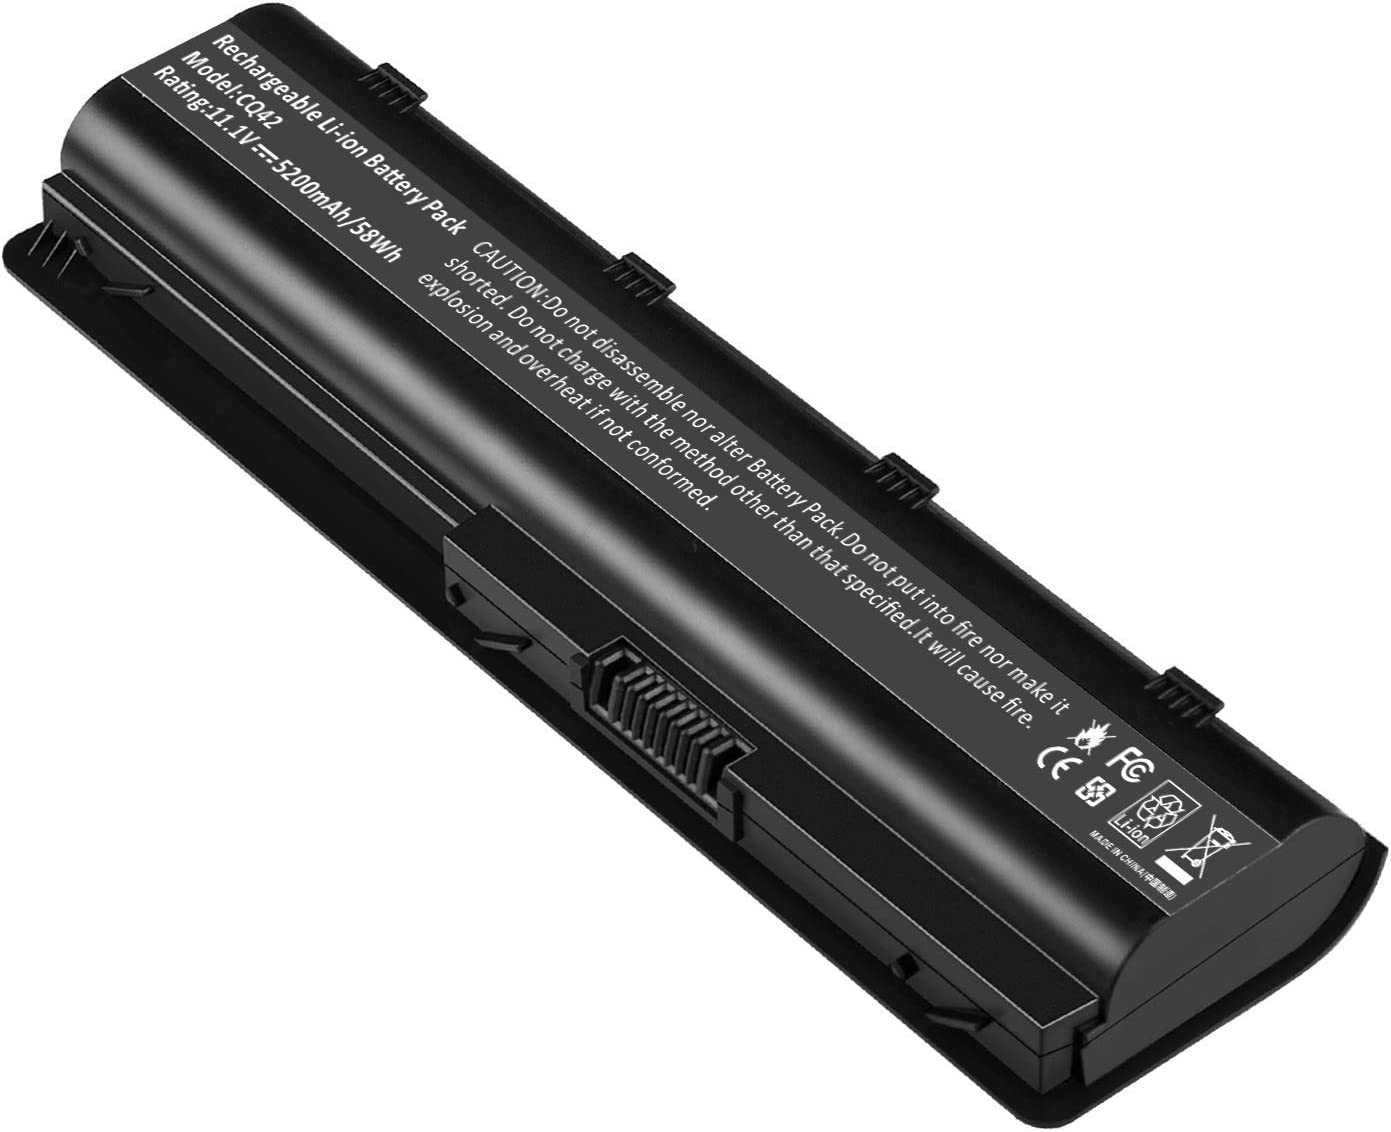 Replacement Battery for HP Spare 593553-001, HP Compaq Presario CQ32 CQ42 CQ43, HP Pavilion dm4 g4 g6 g7 DV3-4000 DV5-2000 DV6-3000 DV7-6000, COMPAQ 435 436, fits HP MU06 (5200mAh)